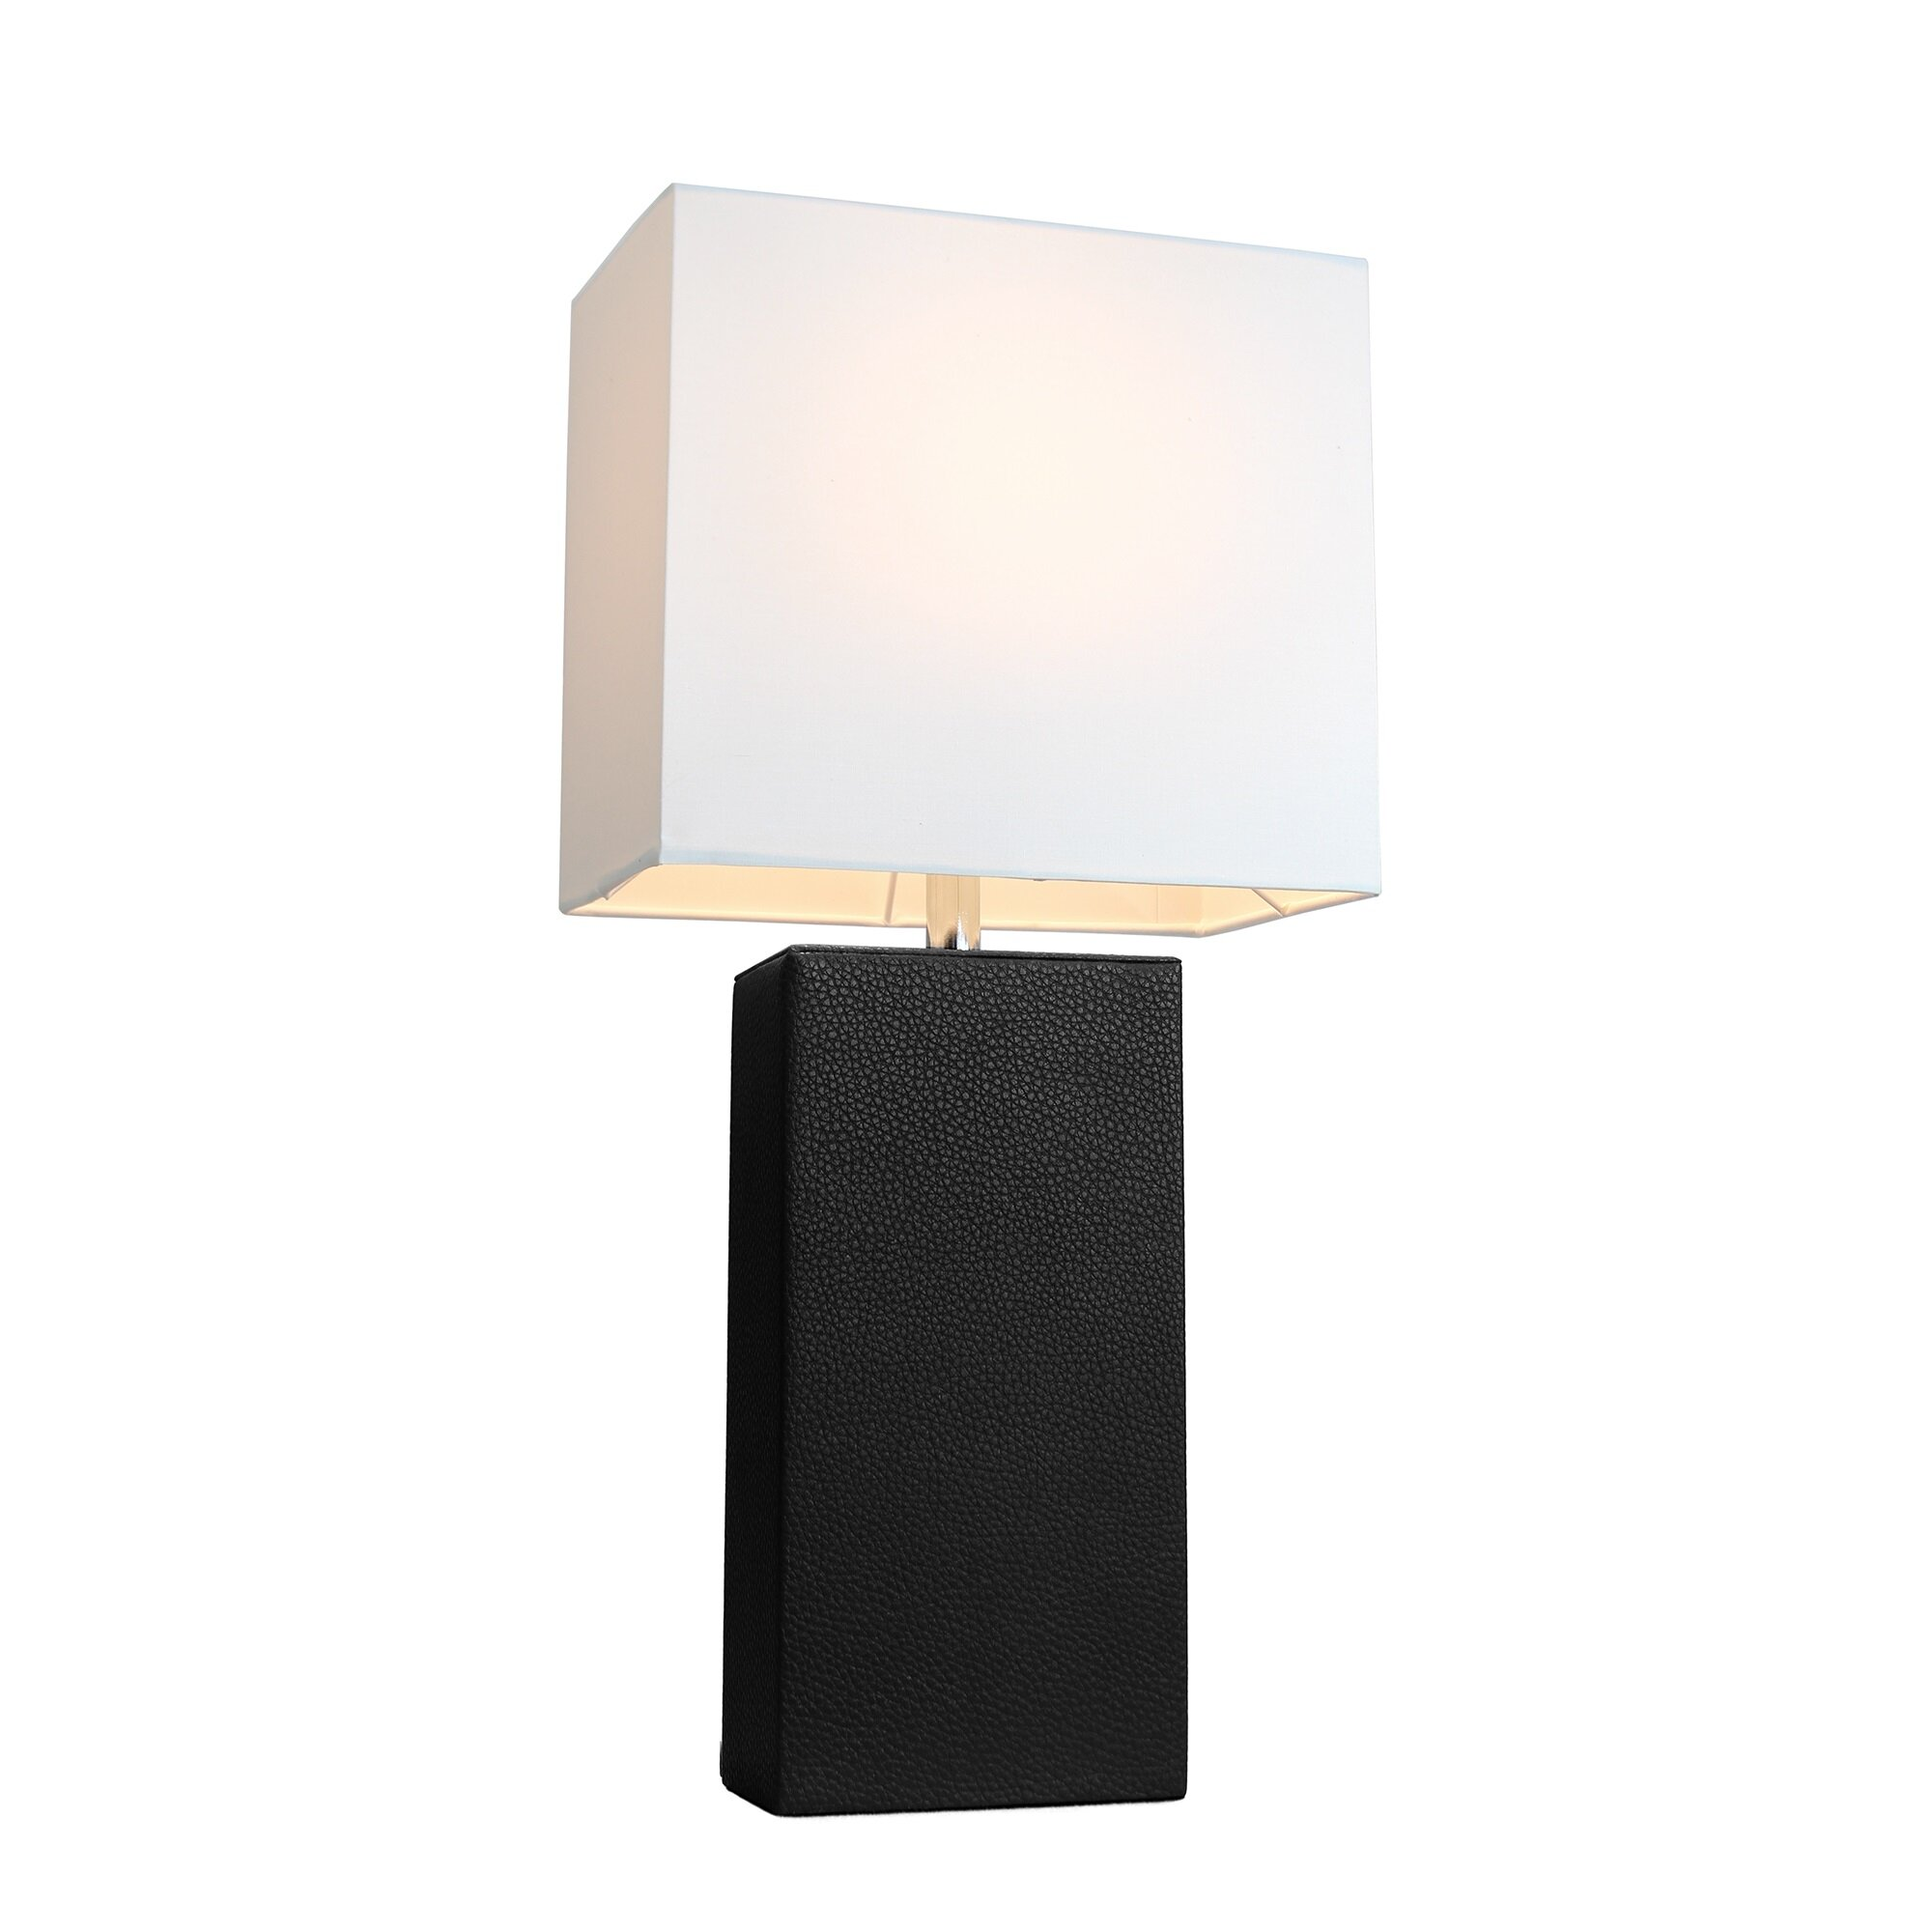 lighting lamps table lamps varick gallery sku vkgl2626. Black Bedroom Furniture Sets. Home Design Ideas